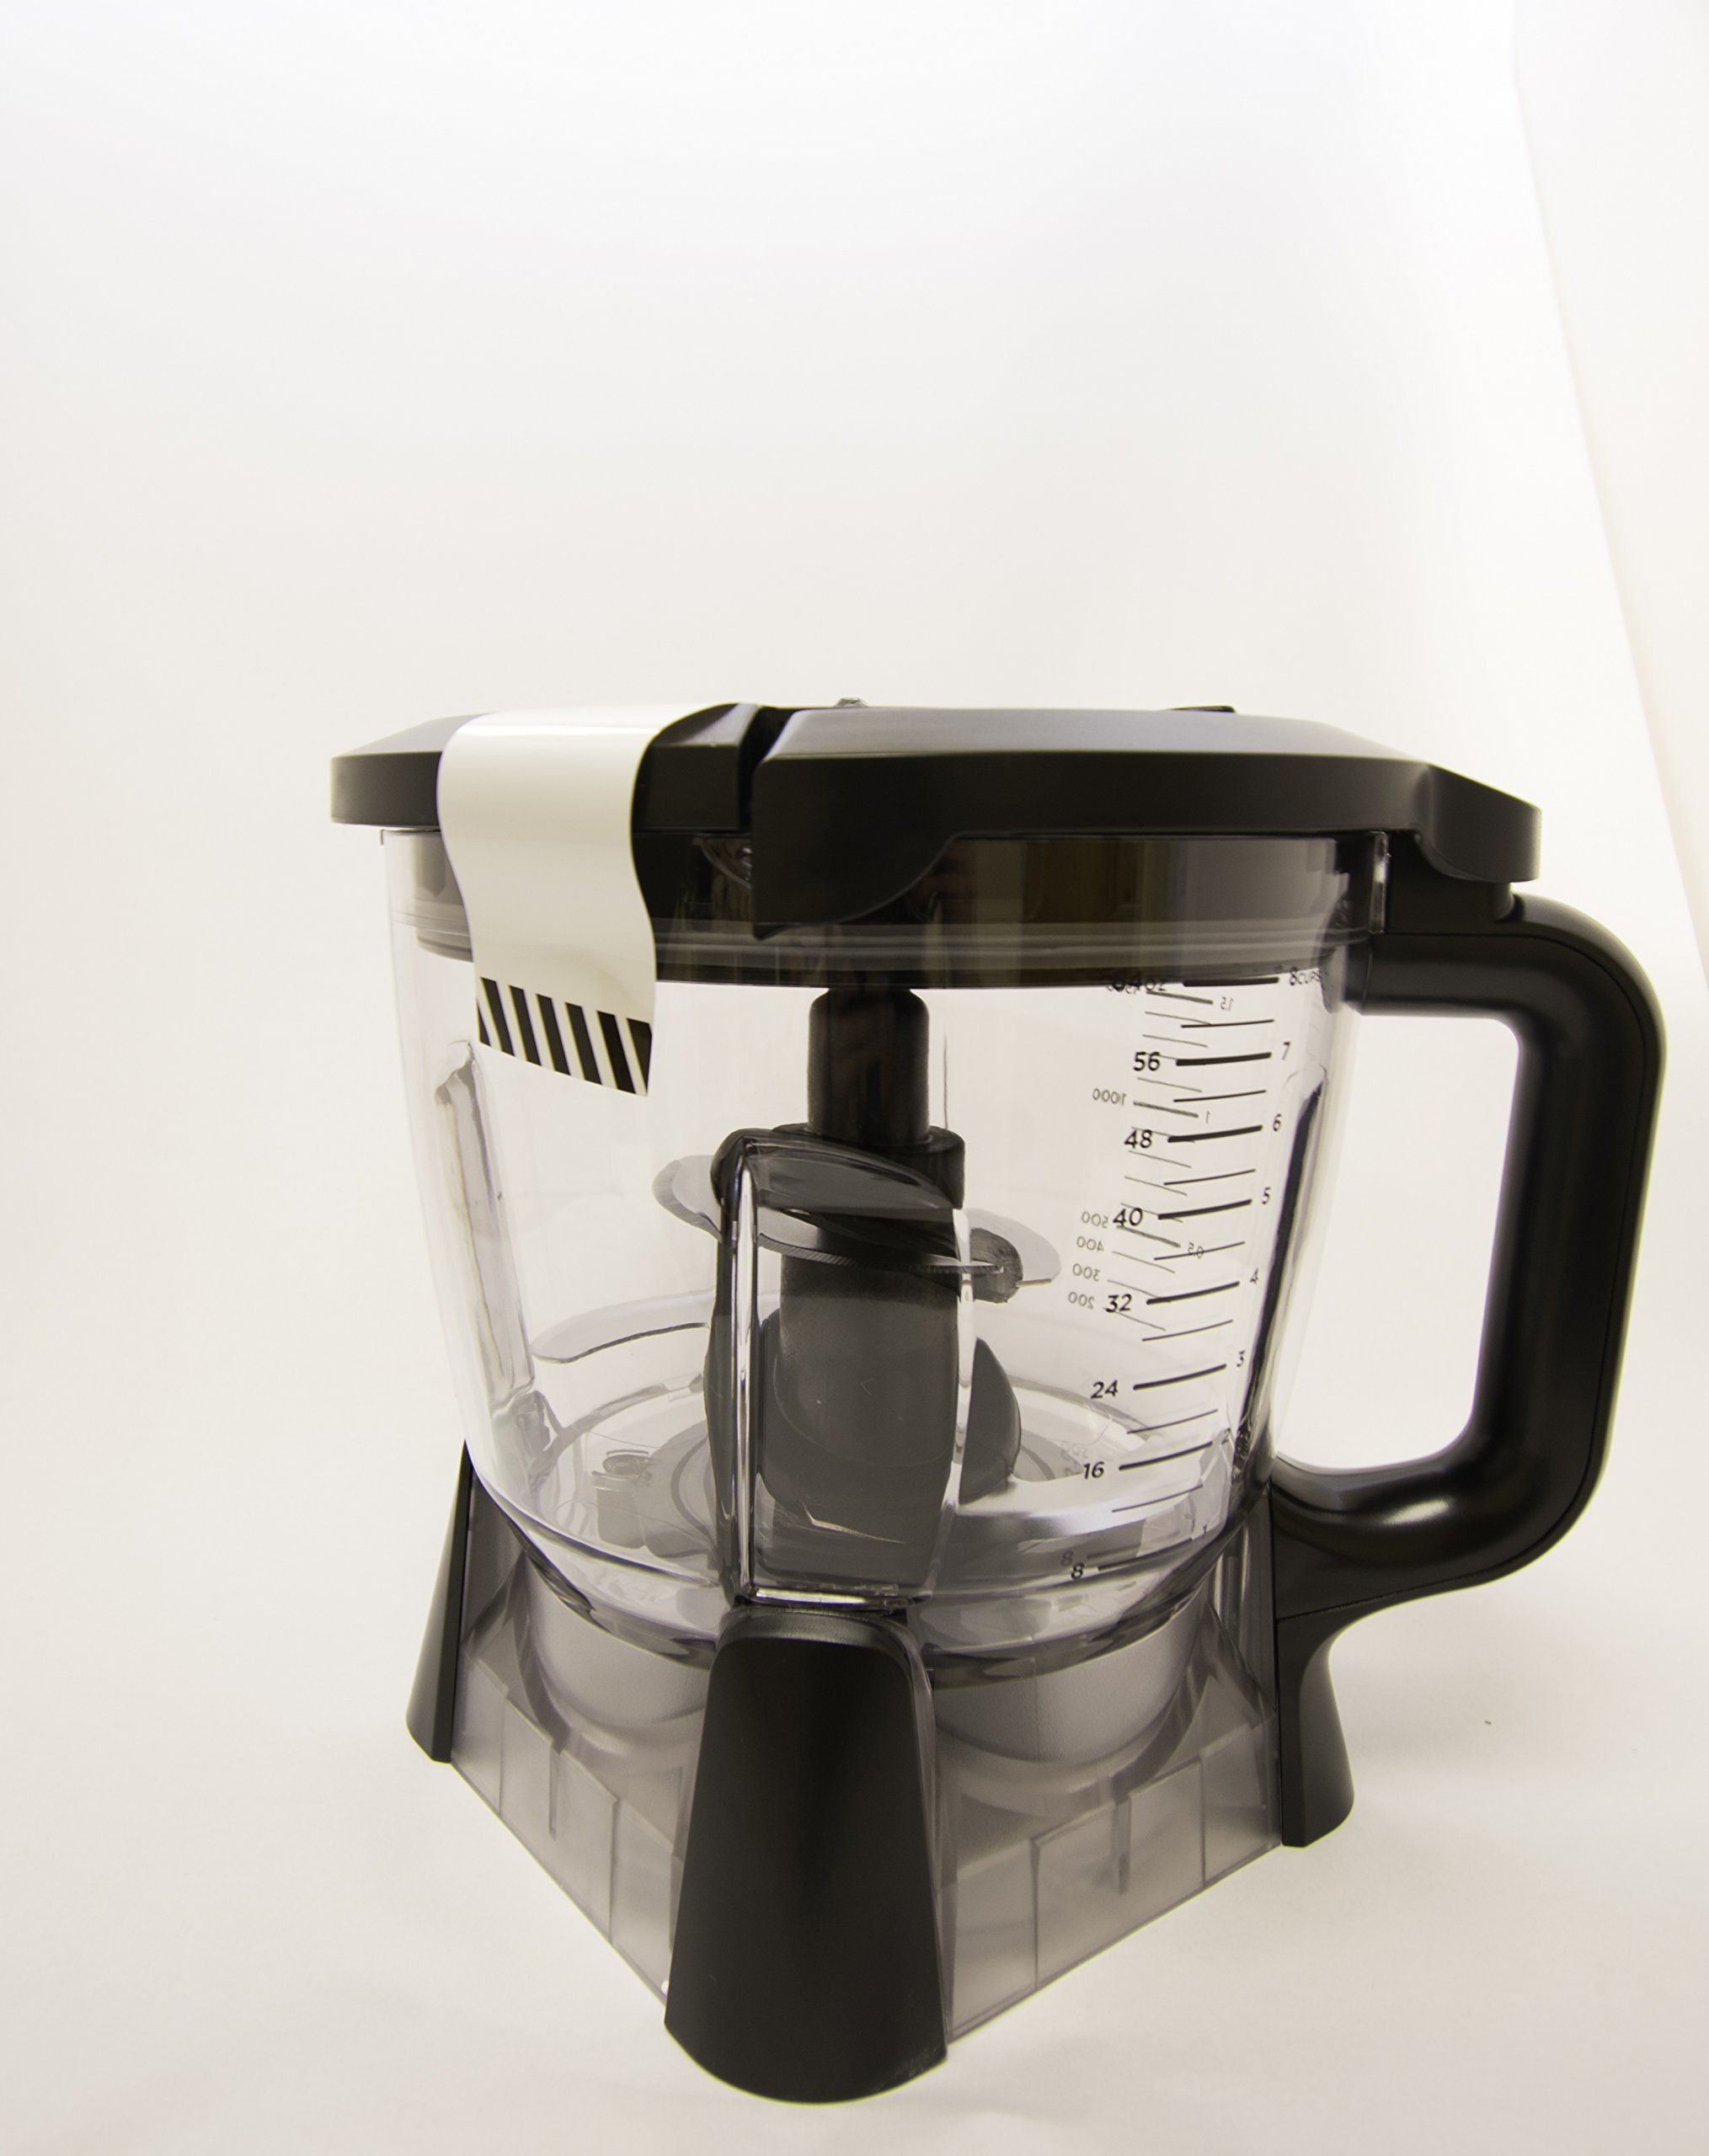 Replacement parts for Ninja Intelli-Sense (64 oz food processor) by BLENDERS AND PARTS (Image #3)